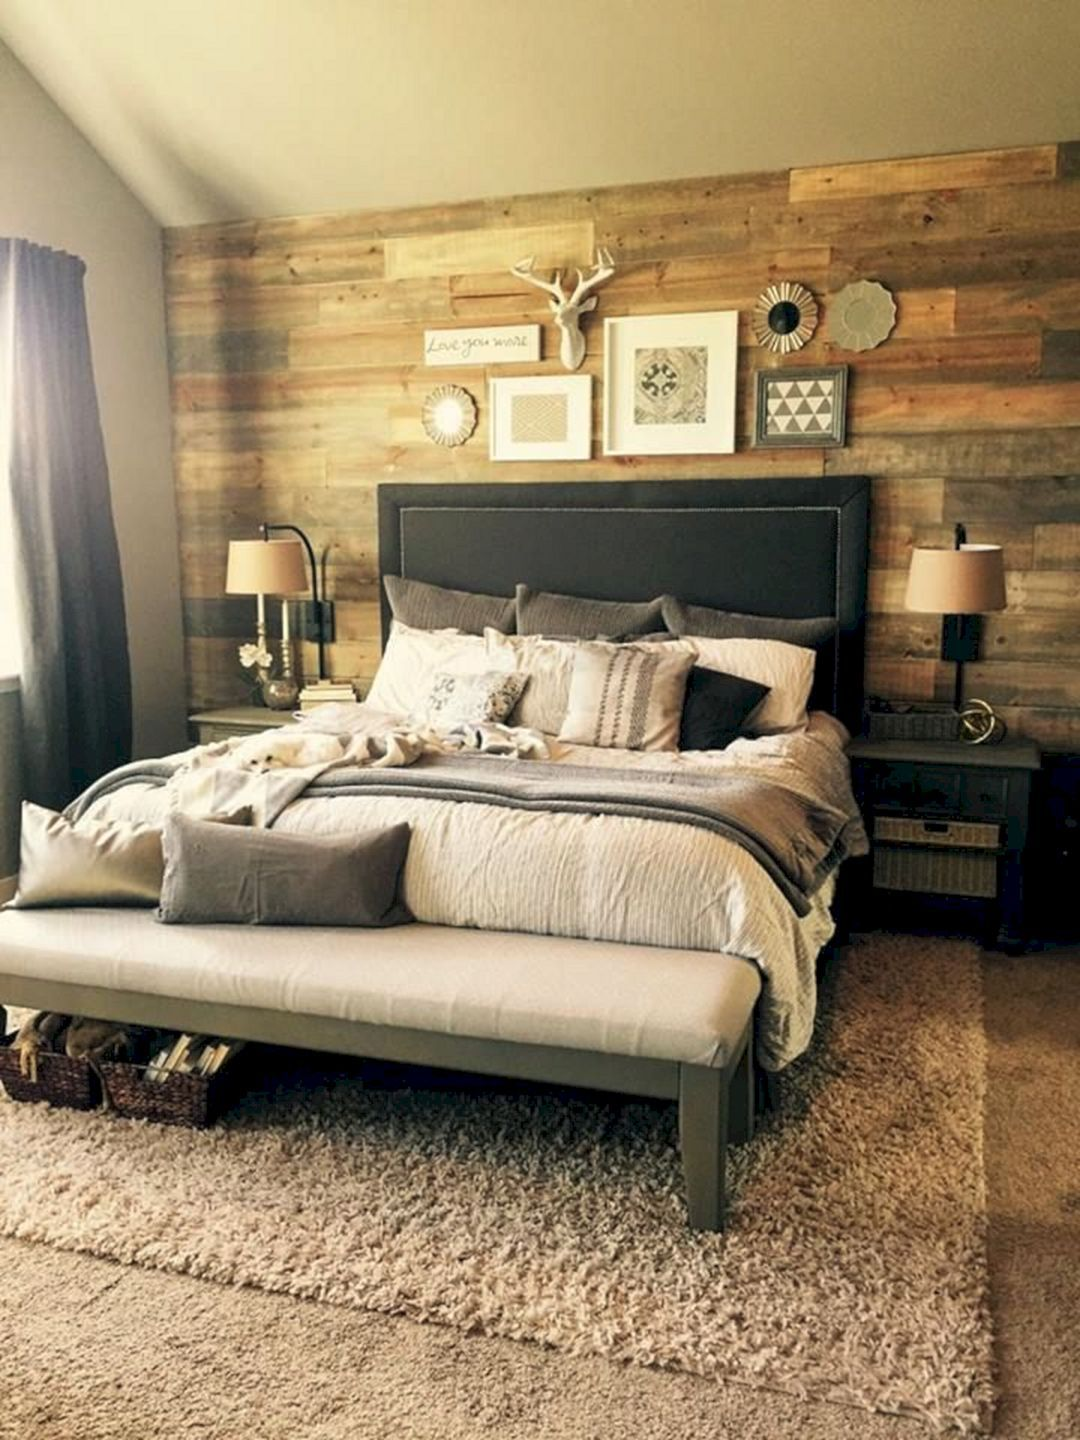 Large master bedroom decor ideas   Beautiful Bedroom Decorating With Shiplap Wall Ideas  Wall